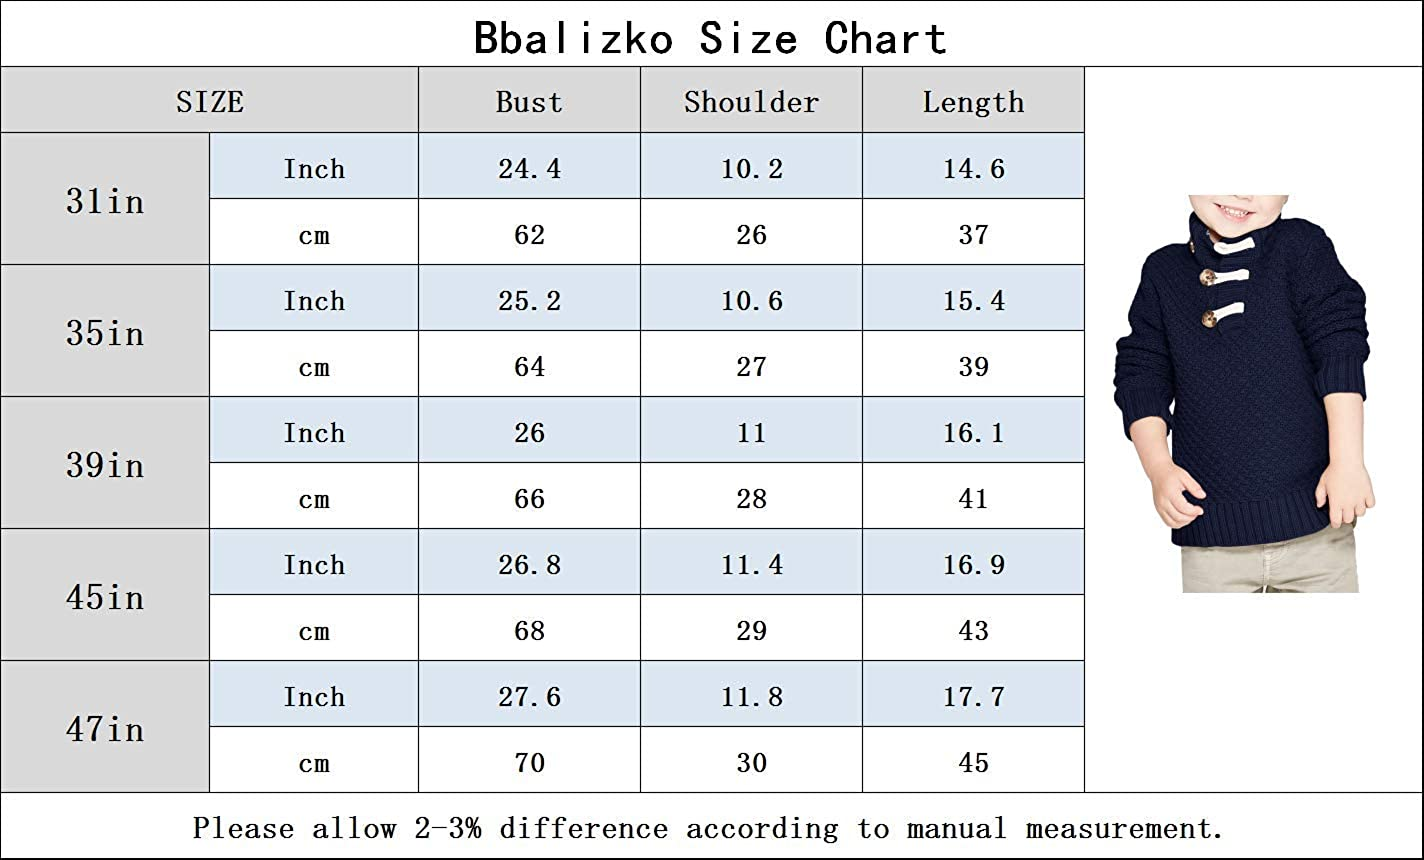 Bbalizko Baby Boys Cable Knit Turtleneck Sweater Pullover Kids Button Down Long Sleeve Casual Sweatshirt 6M-6T